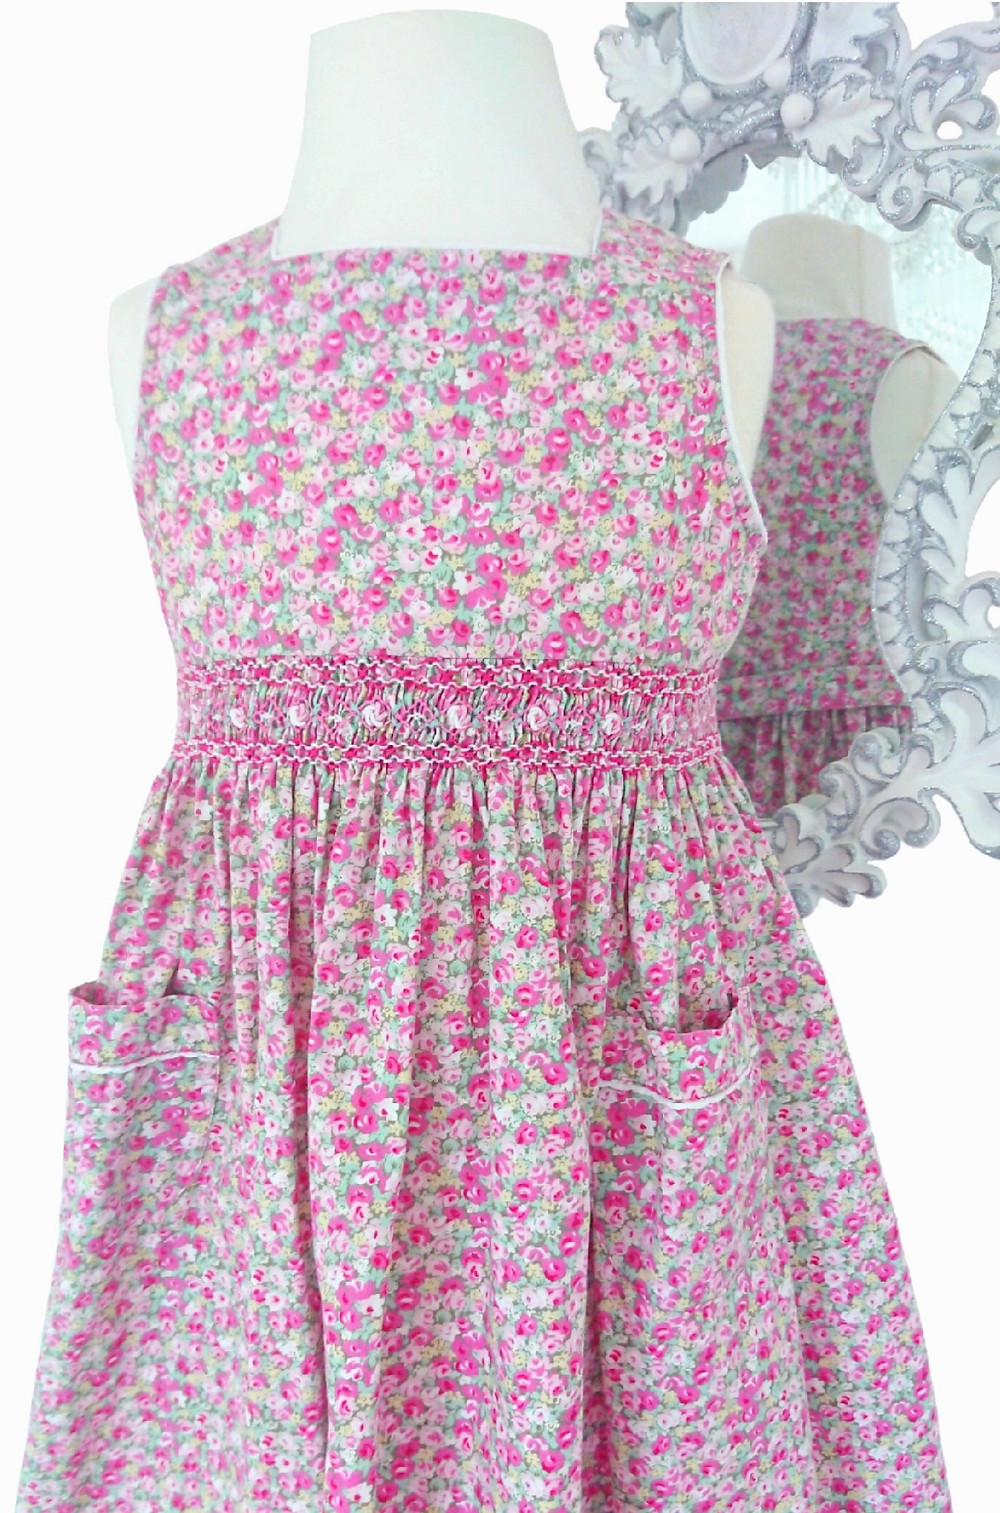 Beautiful pink floral vintage dress with smocking